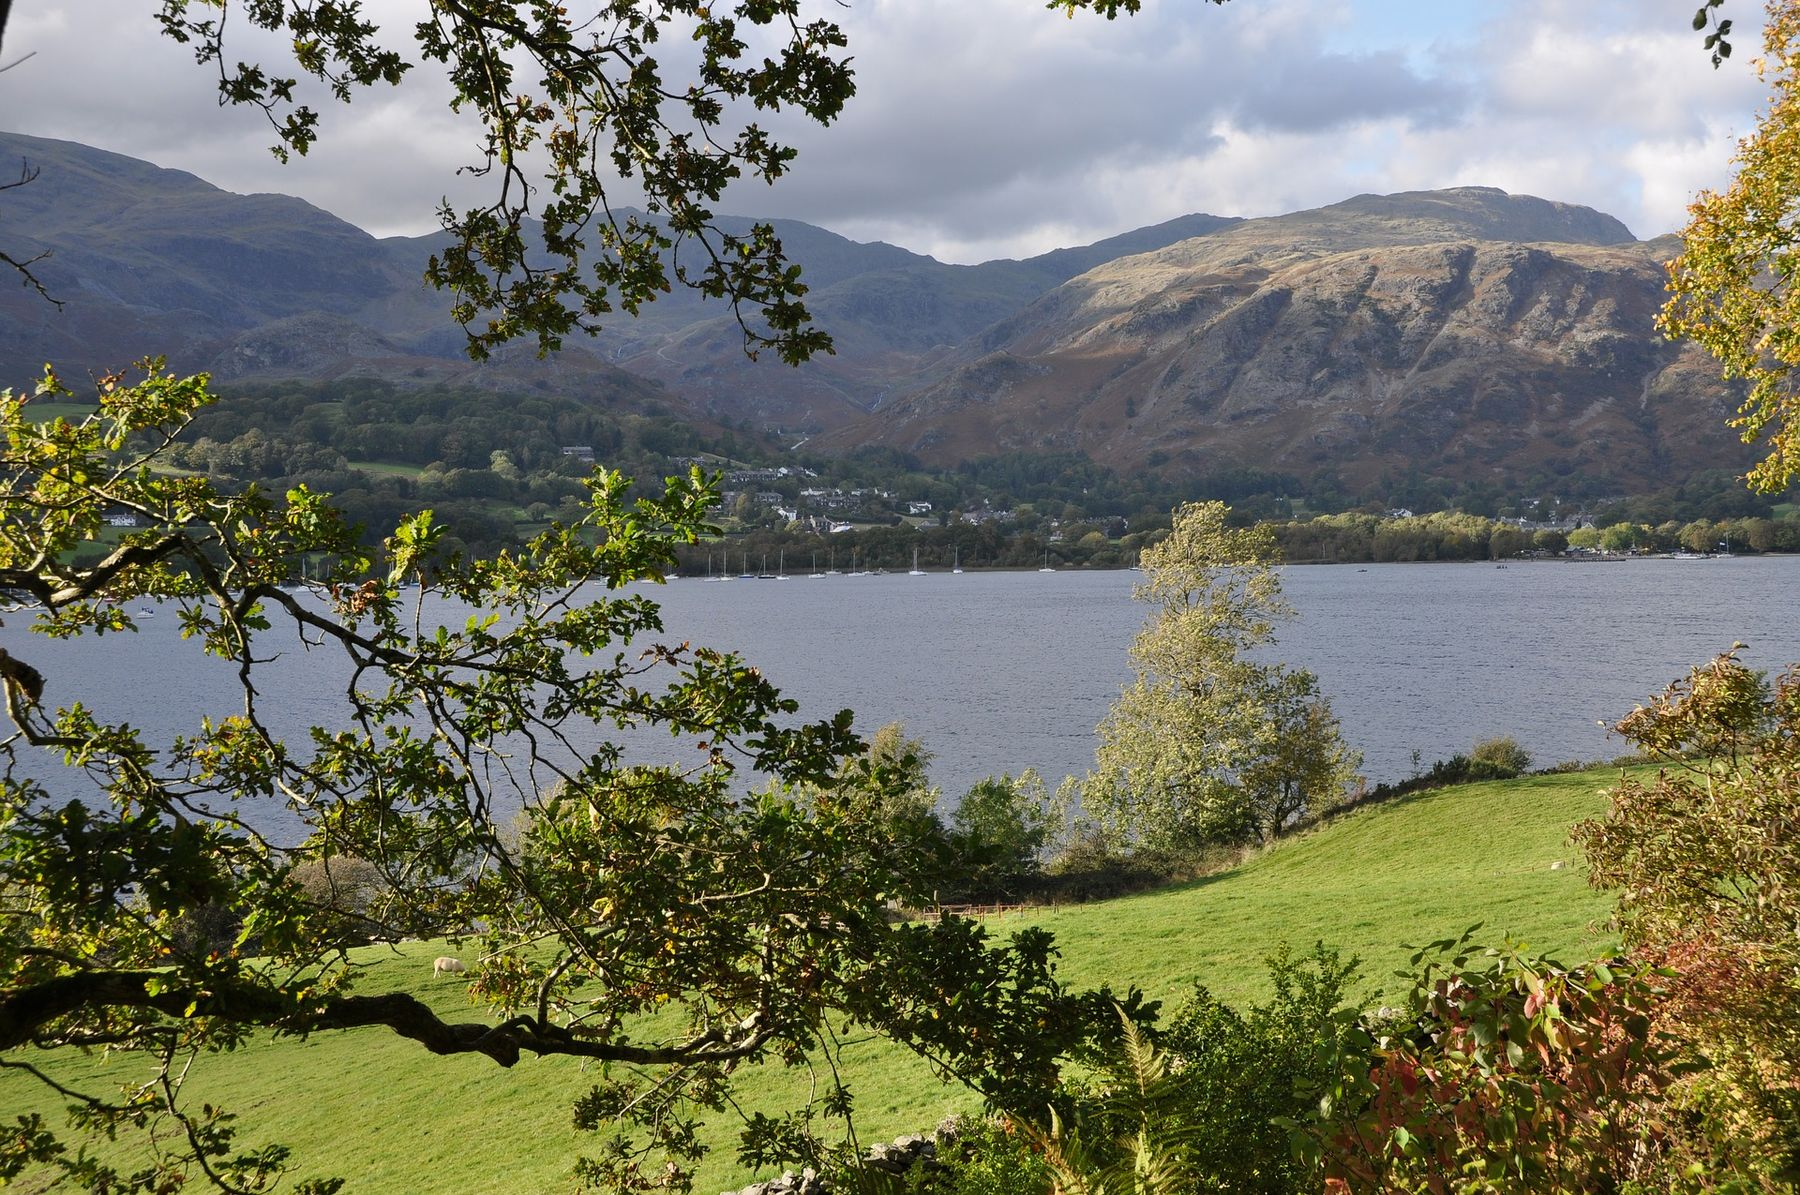 Coniston Water, a lake surrounded by mountains and trees in the Lake District